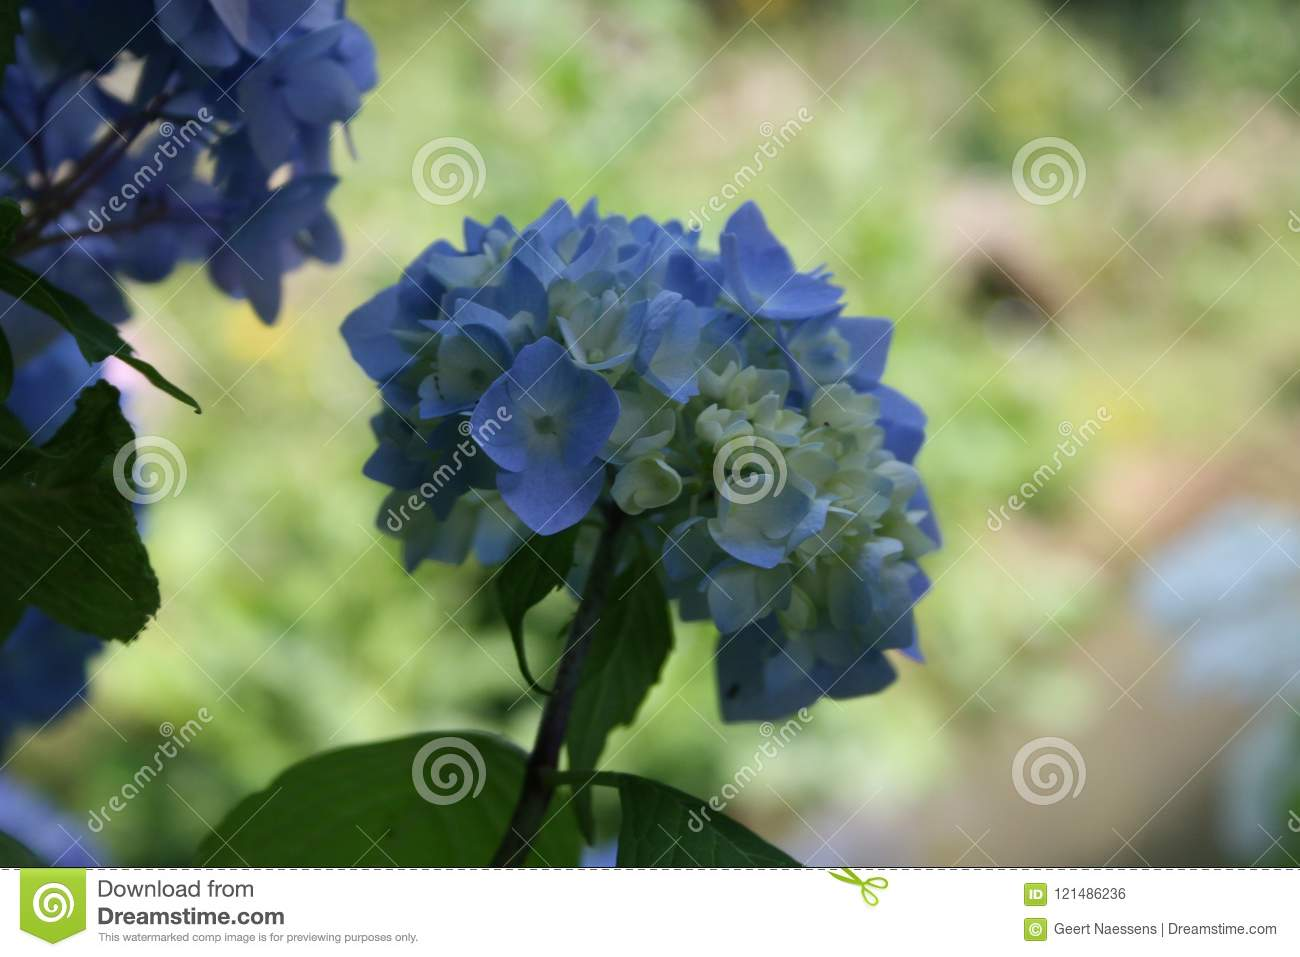 Soft blue hydrangea blue flowering bush stock photo image of download soft blue hydrangea blue flowering bush stock photo image of plant blue izmirmasajfo